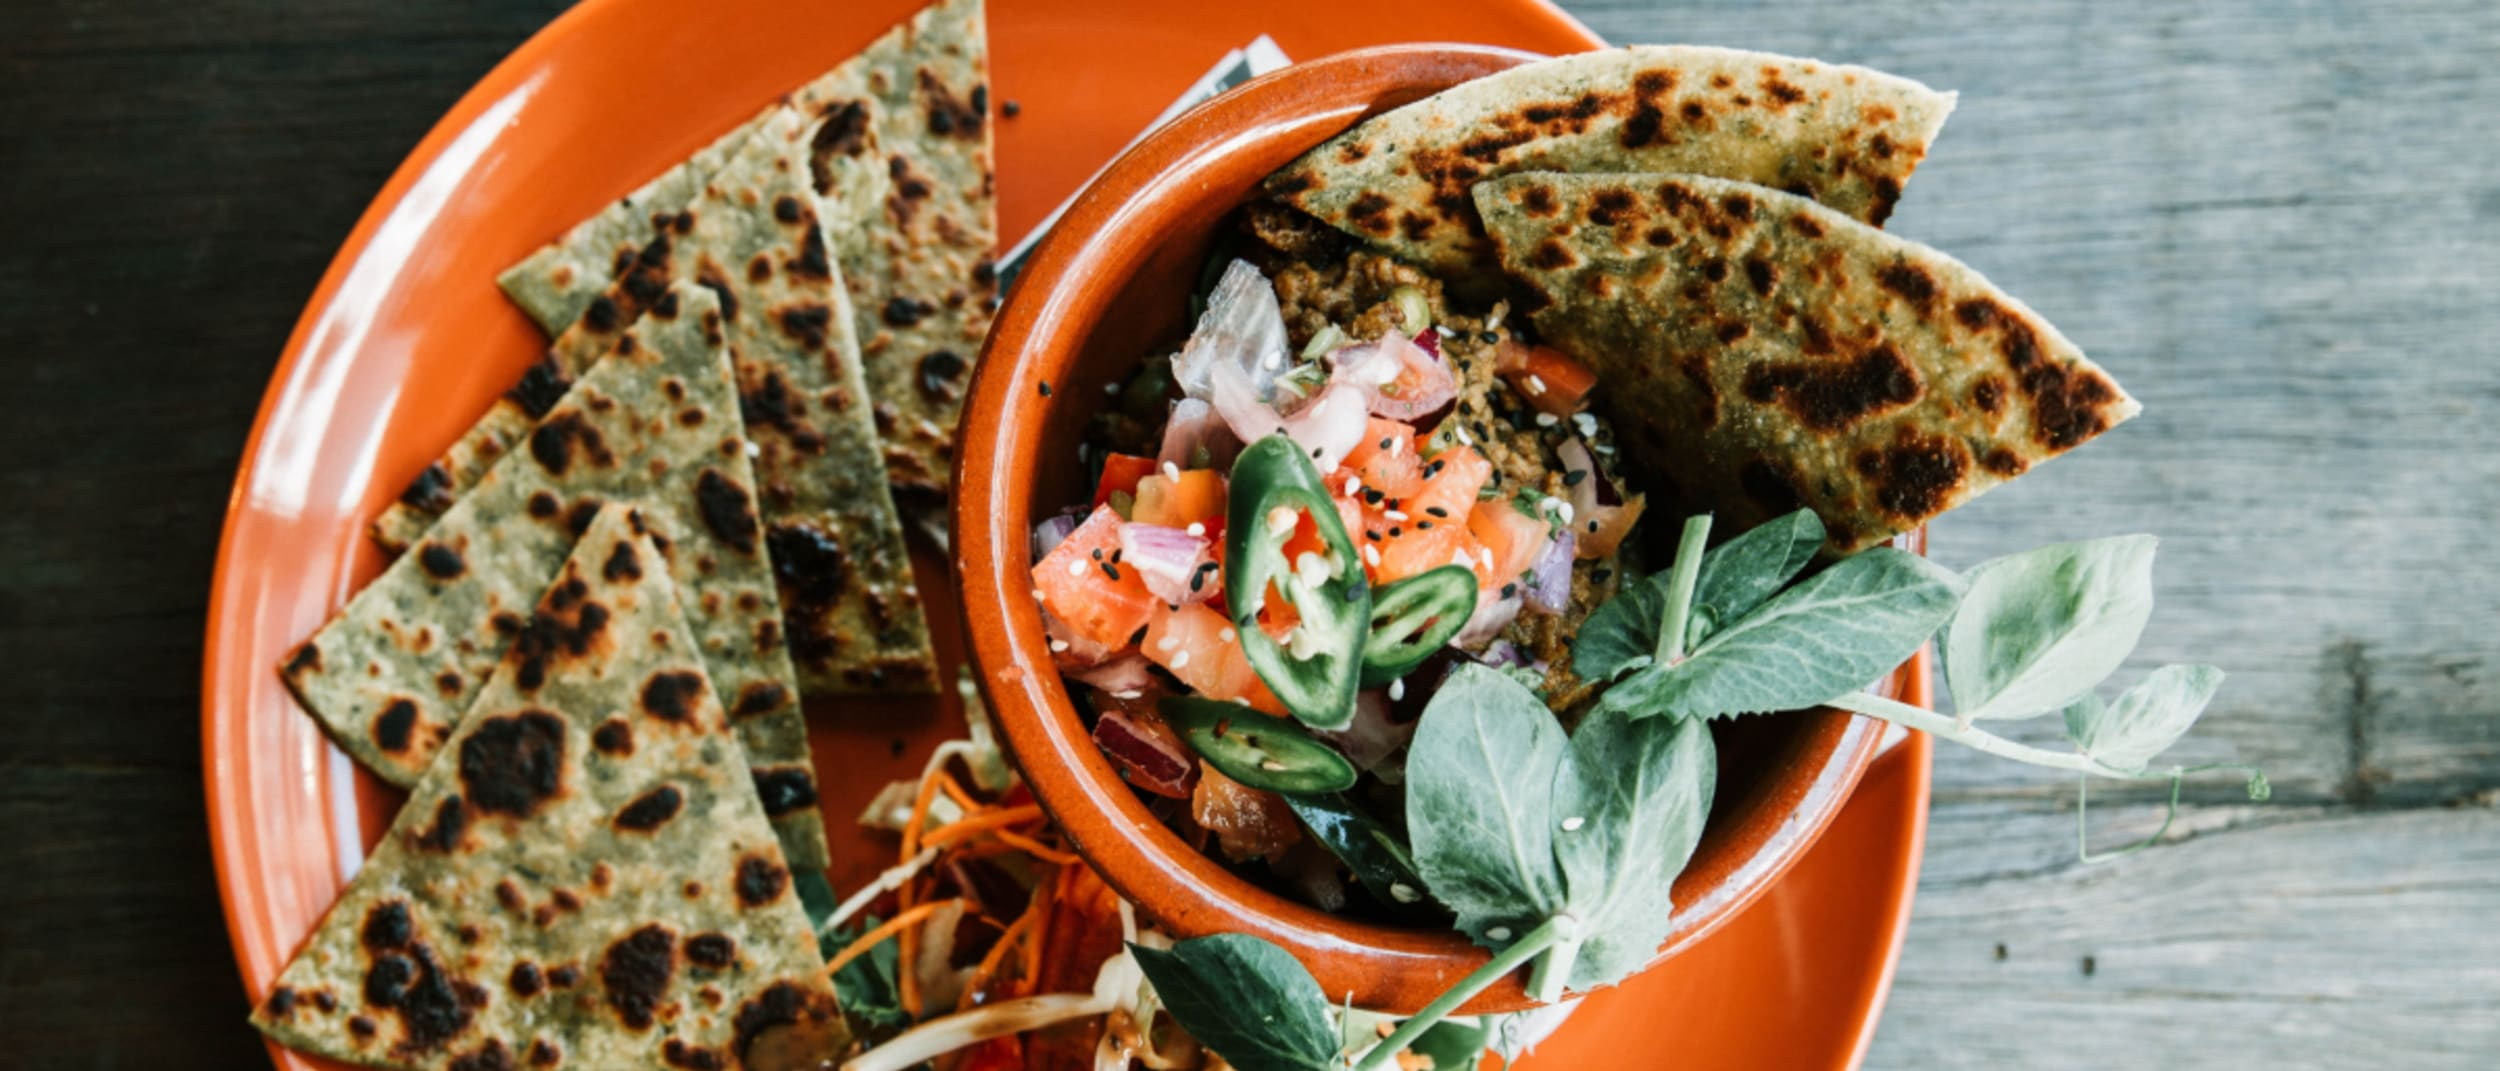 Perks Kitchen: daily specials